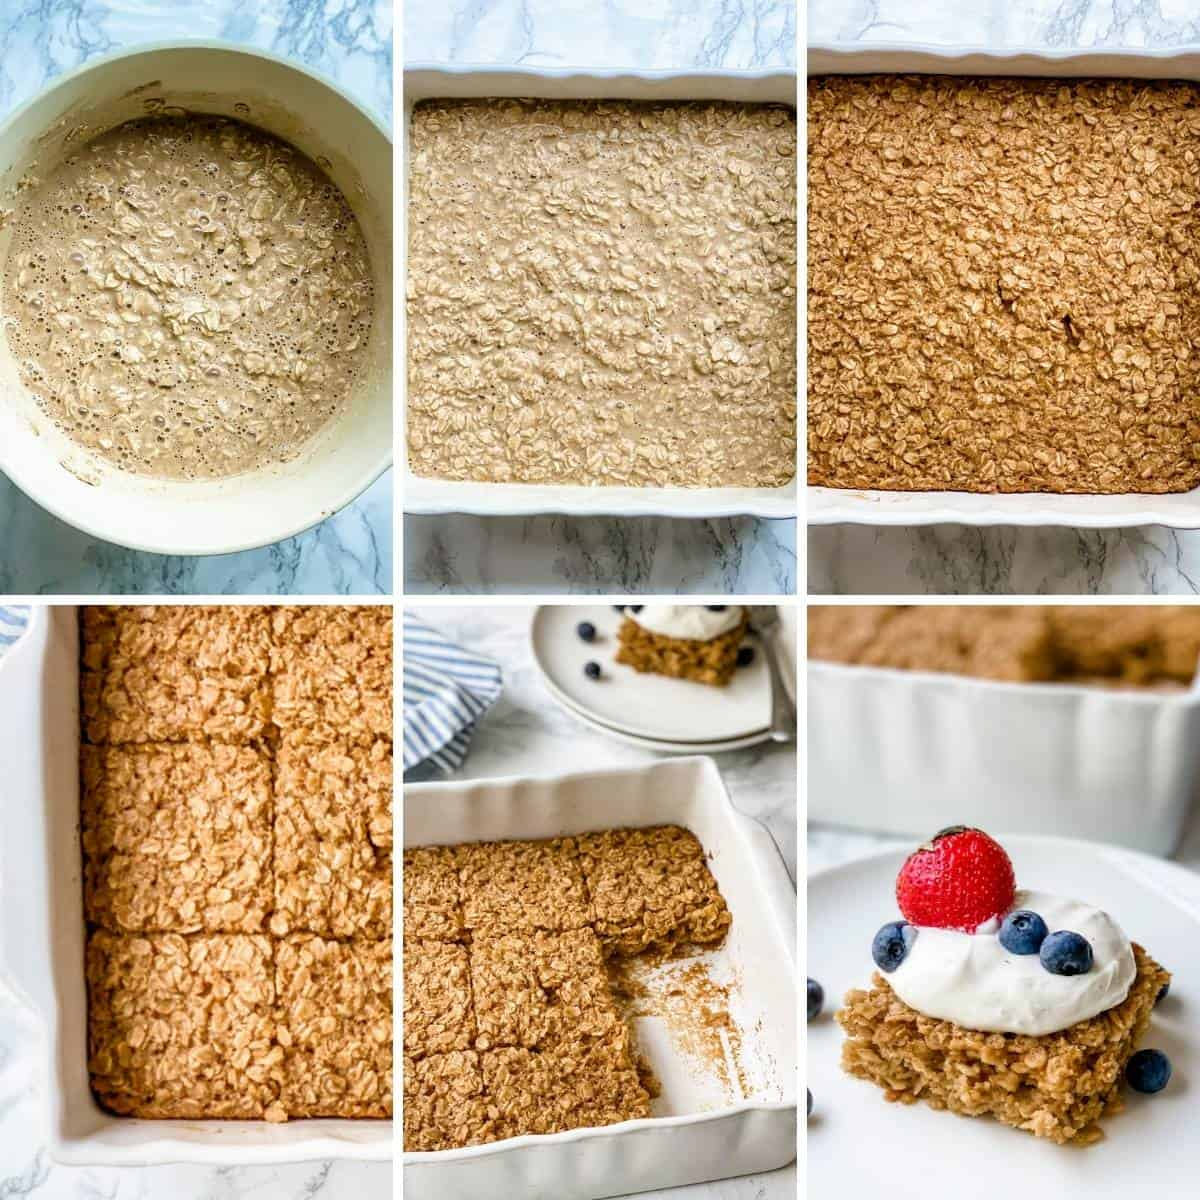 collage showing how to make an oatmeal bake.